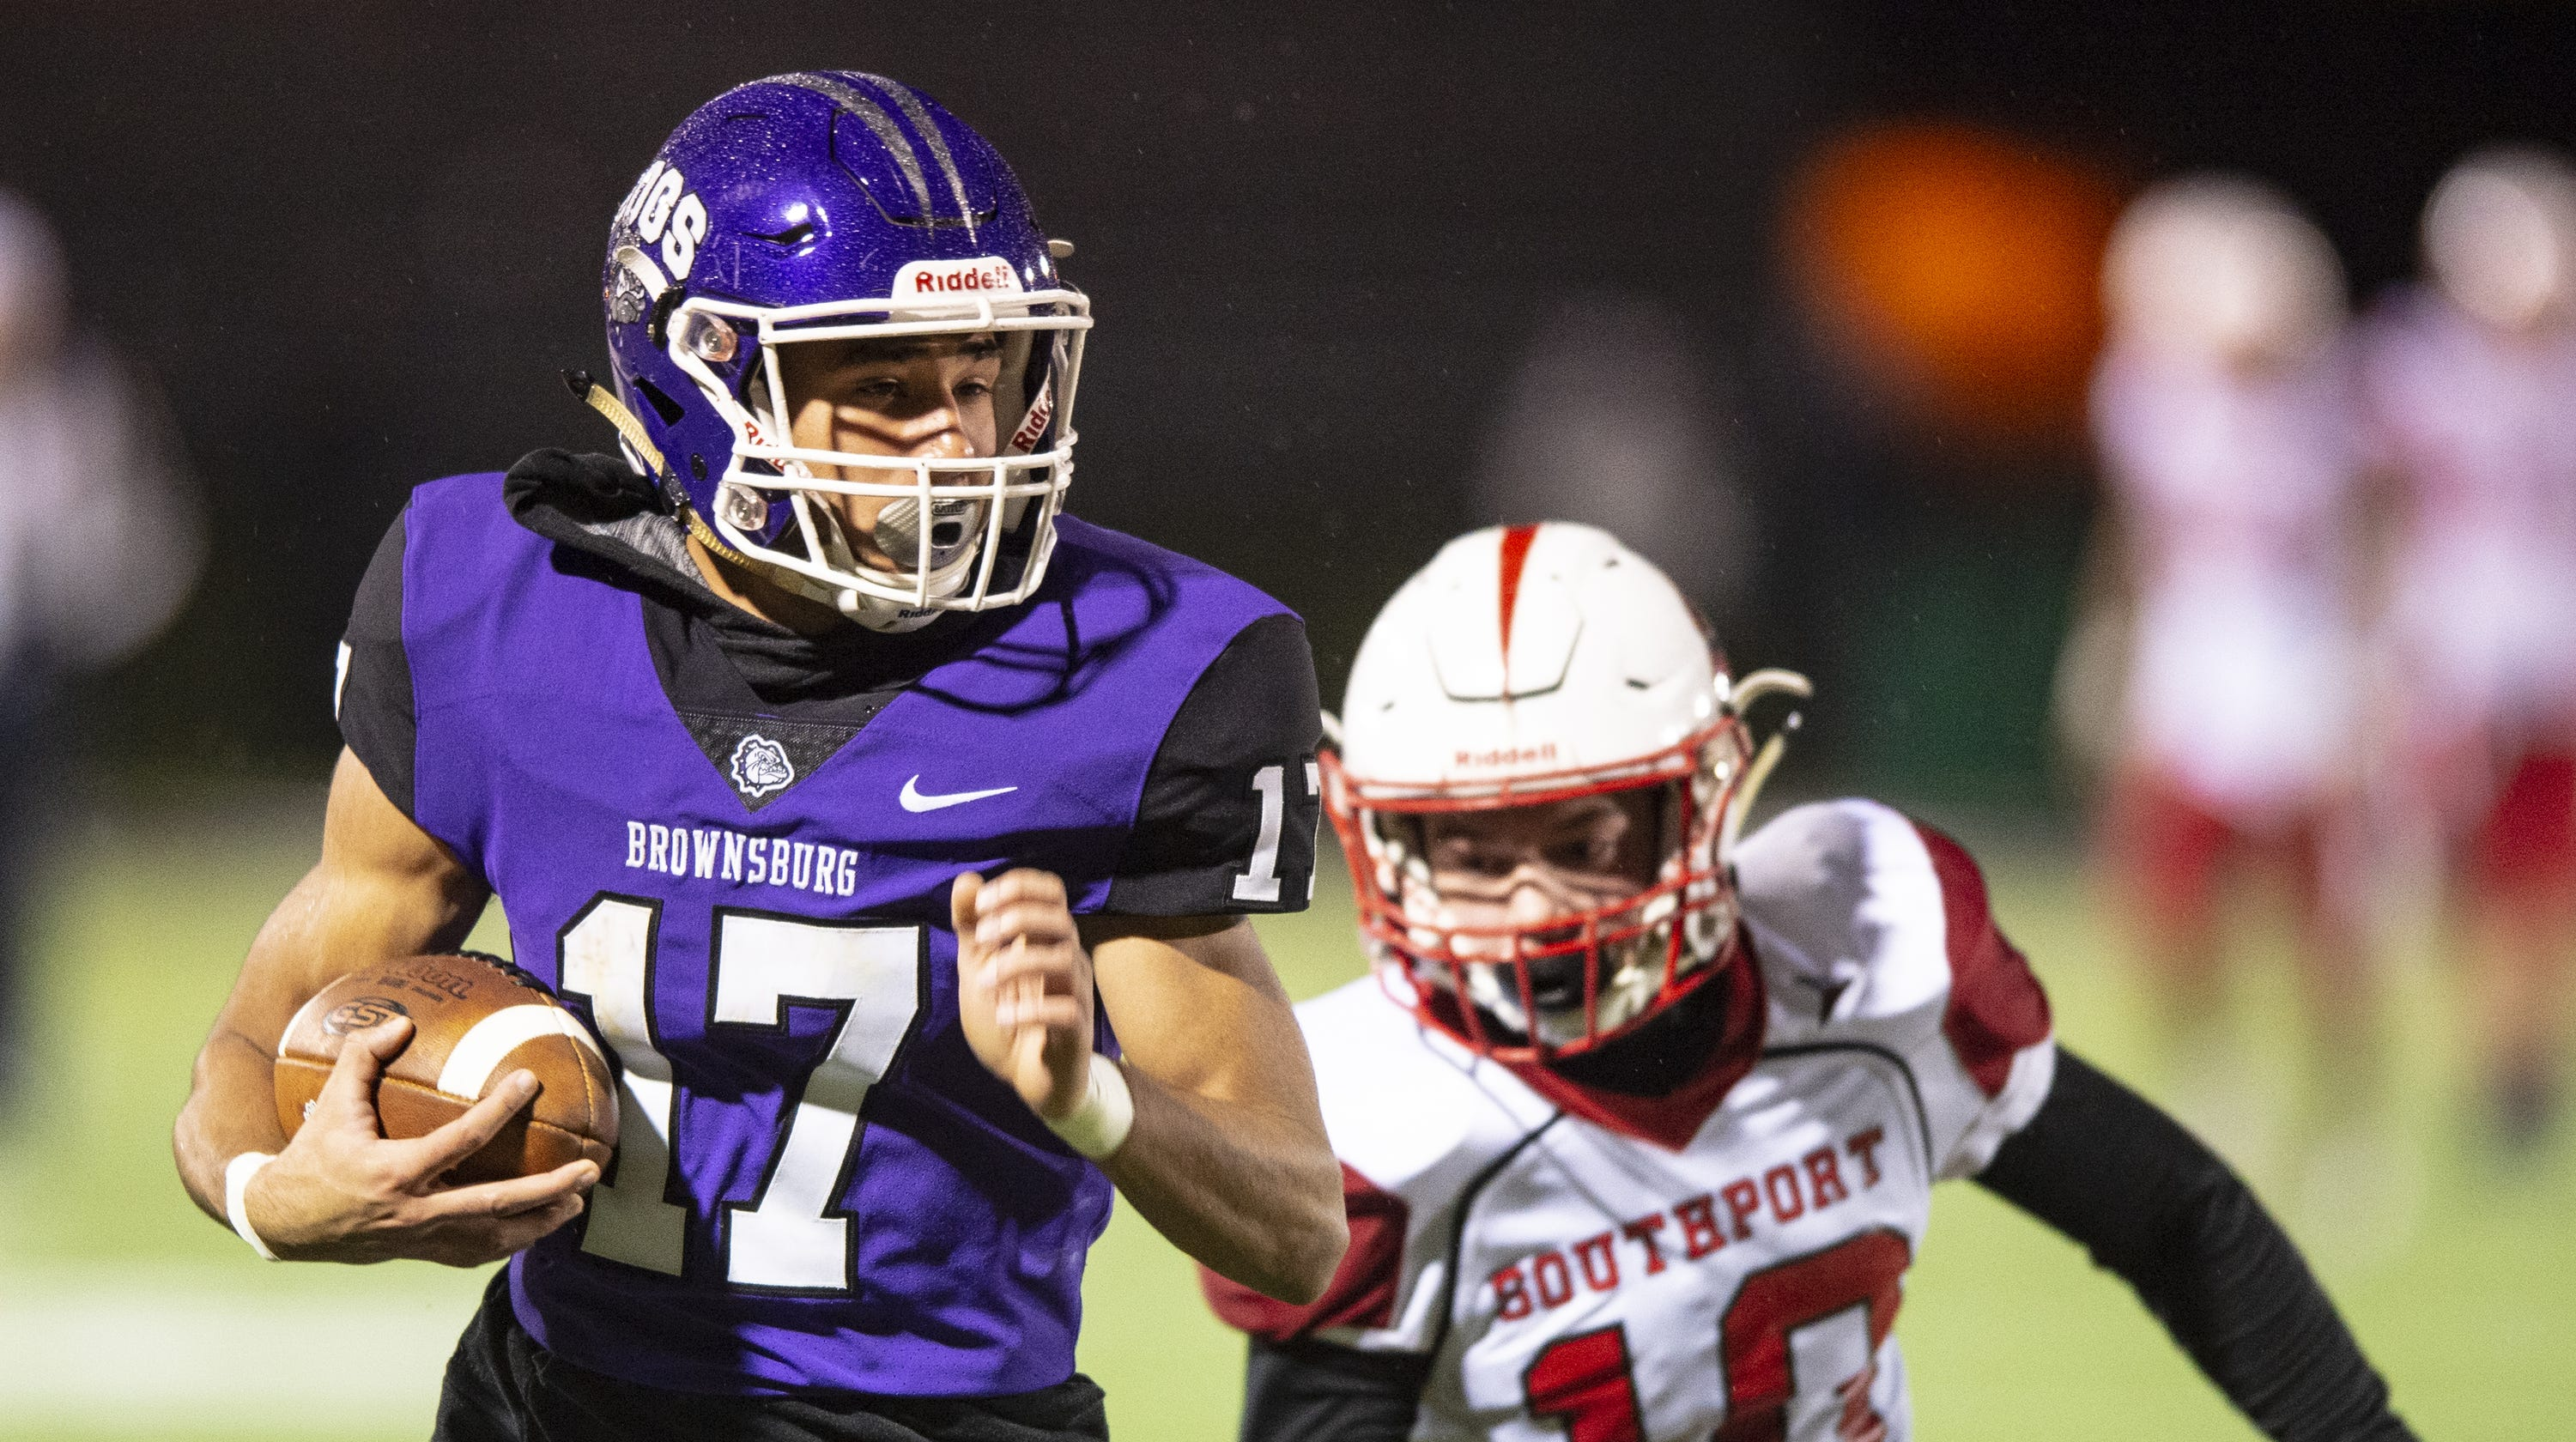 Indiana high school football scores, highlights and more